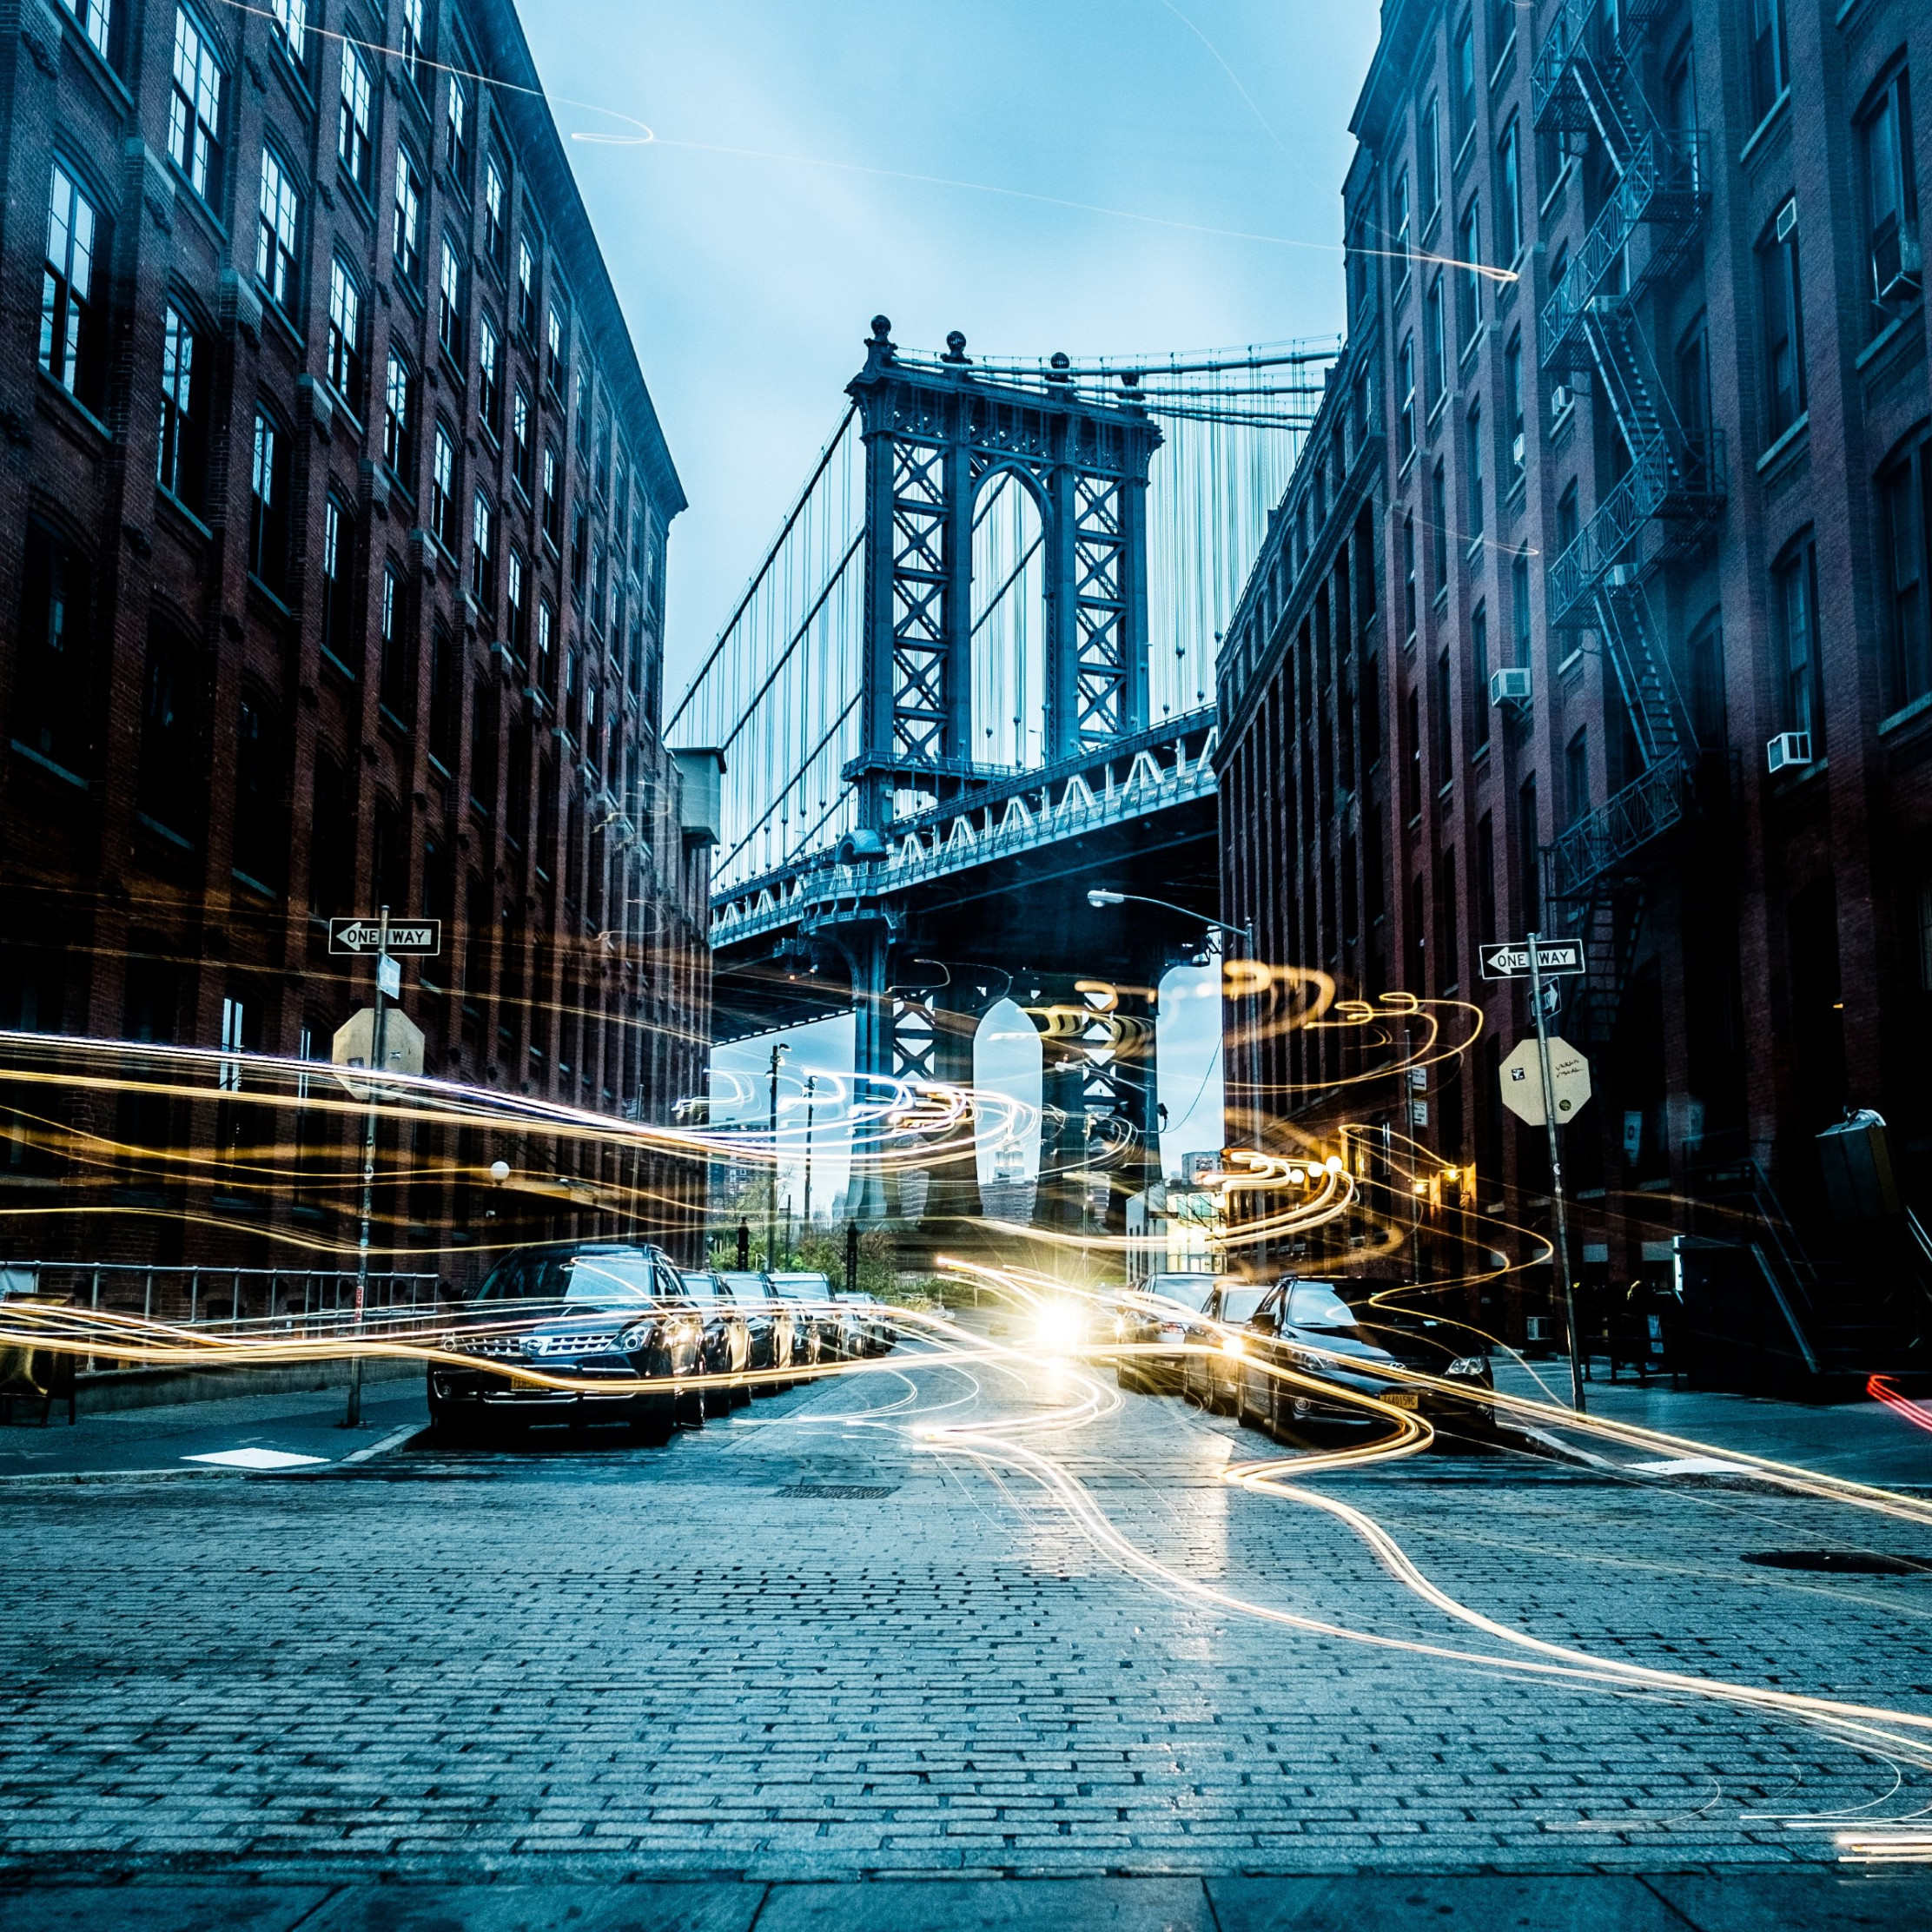 Light painting on New York streets | 2224x2224 wallpaper